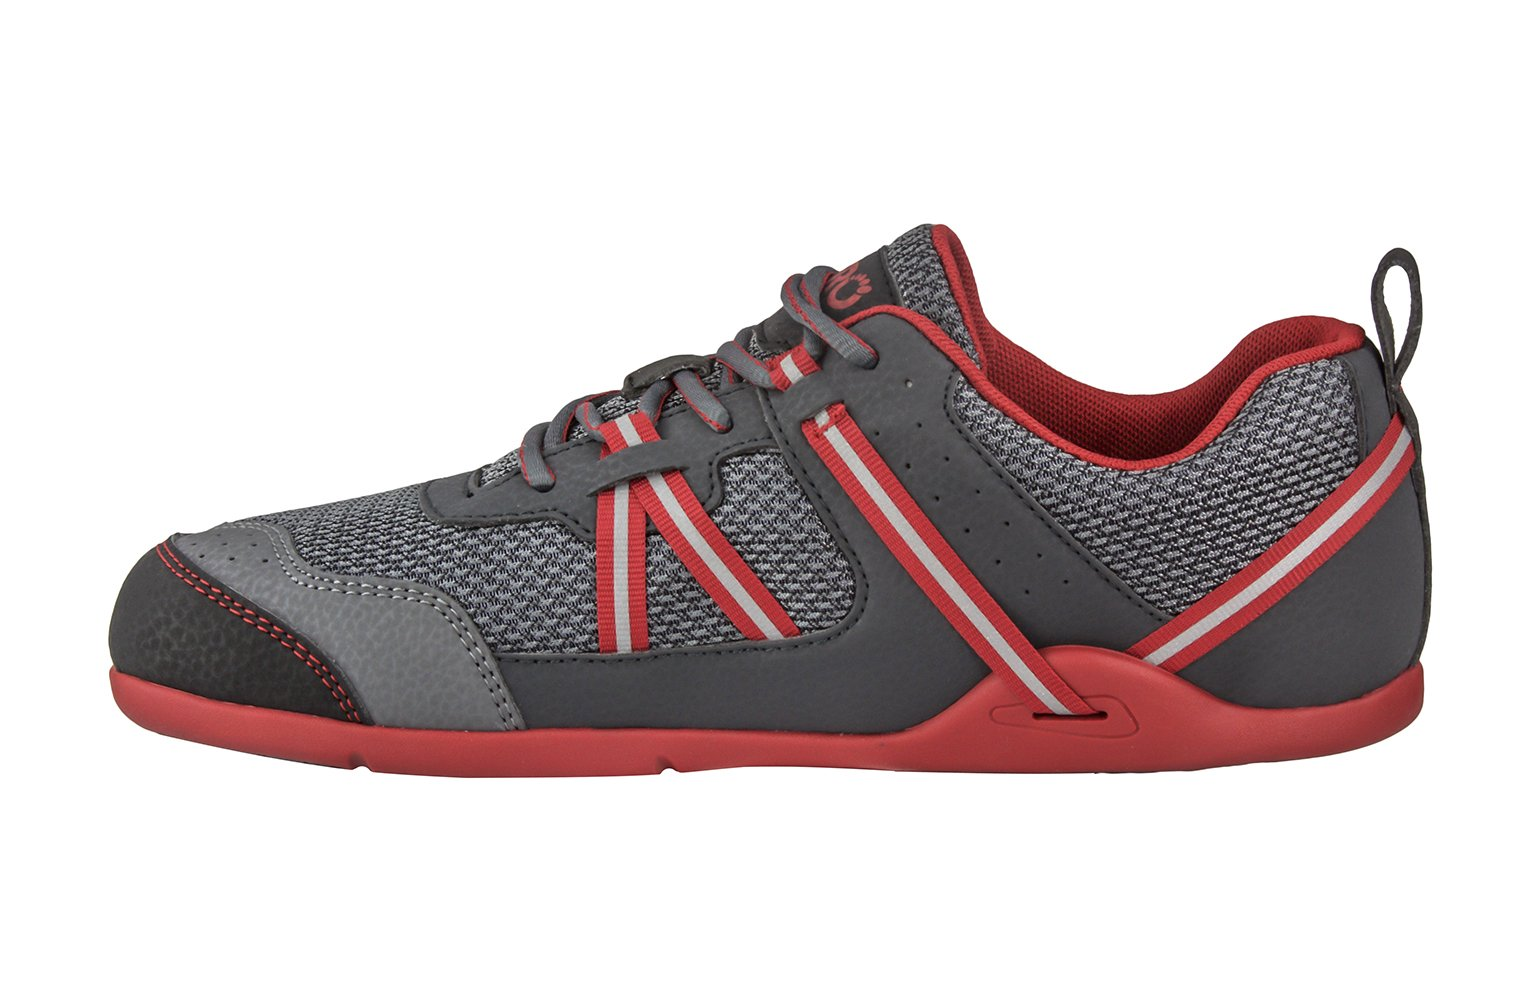 Xero Shoes Prio - Men's Minimalist Barefoot Trail and Road Running Shoe - Fitness, Athletic Zero Drop Sneaker - Charcoal Red by Xero Shoes (Image #4)